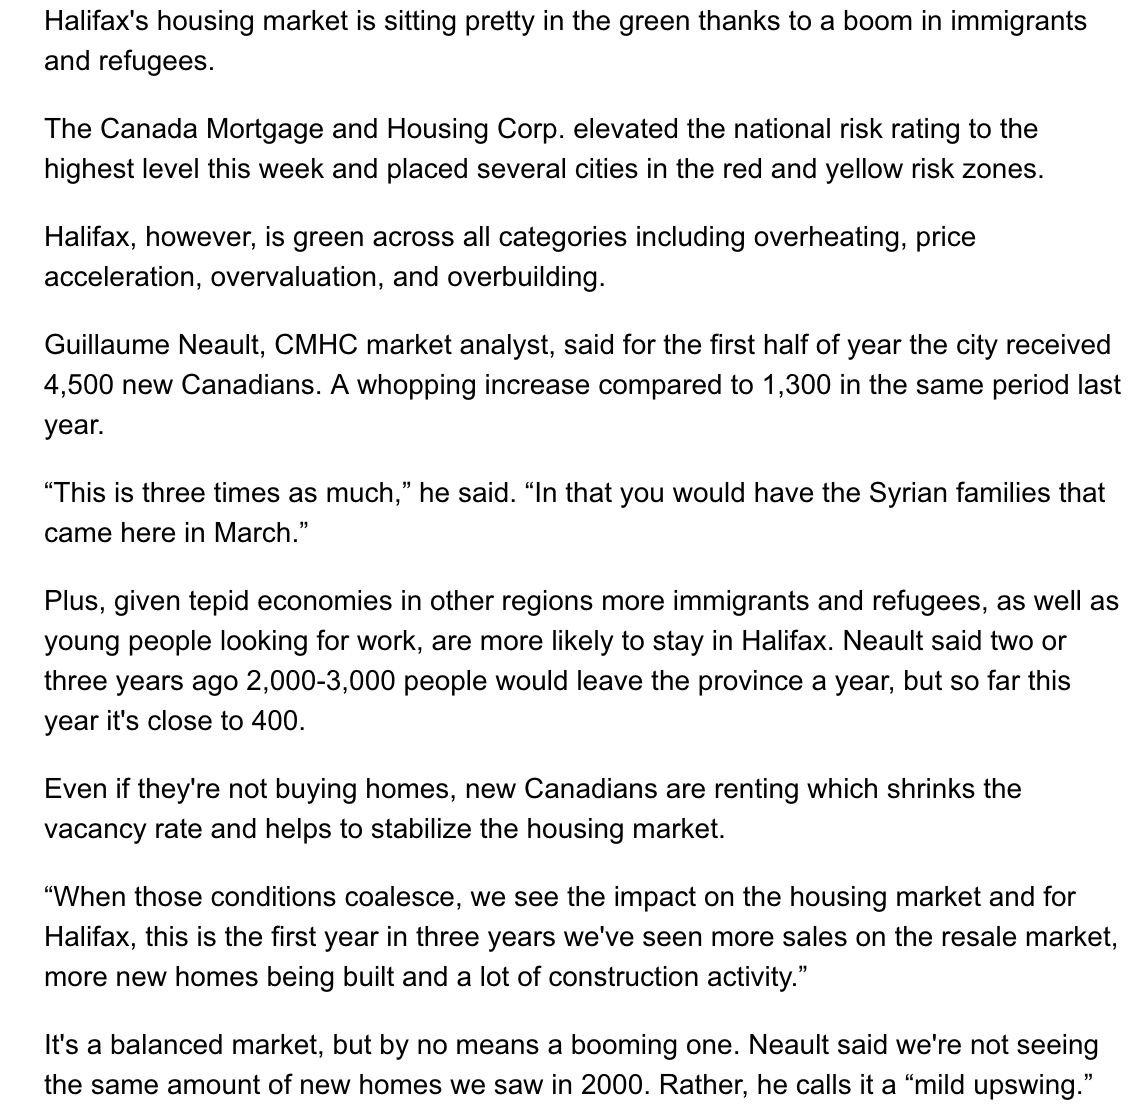 October 28th - Chronicle Herald - Halifax news story - immigration to Nova Scotia's impact on Halifax housing market